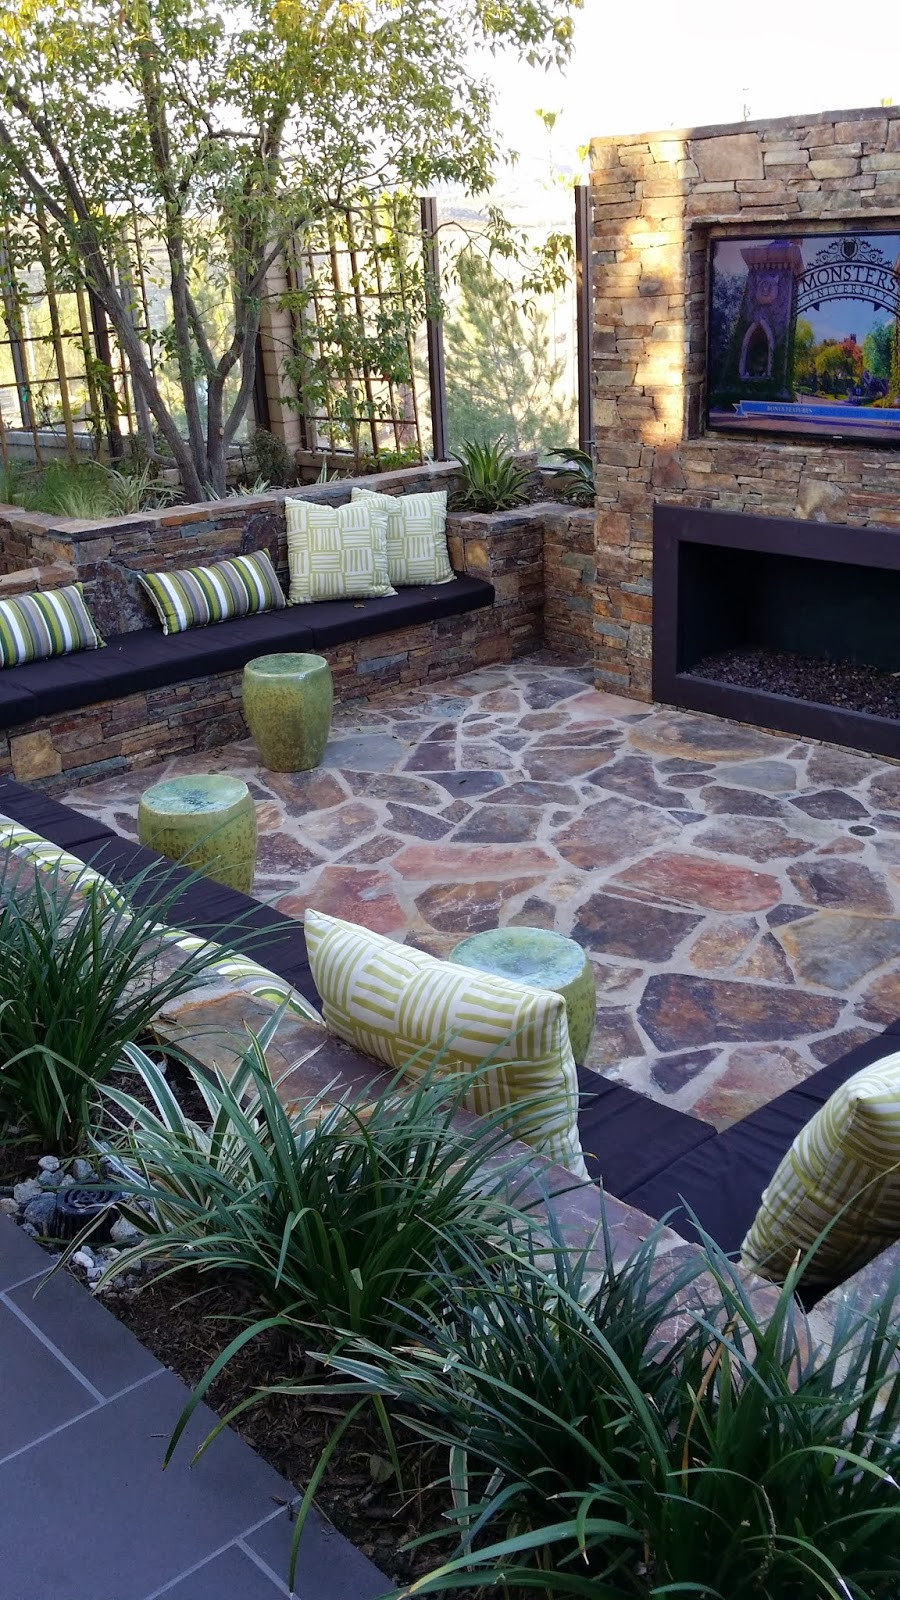 Tg interiors model homes in orange county and shopping for Small patio design ideas